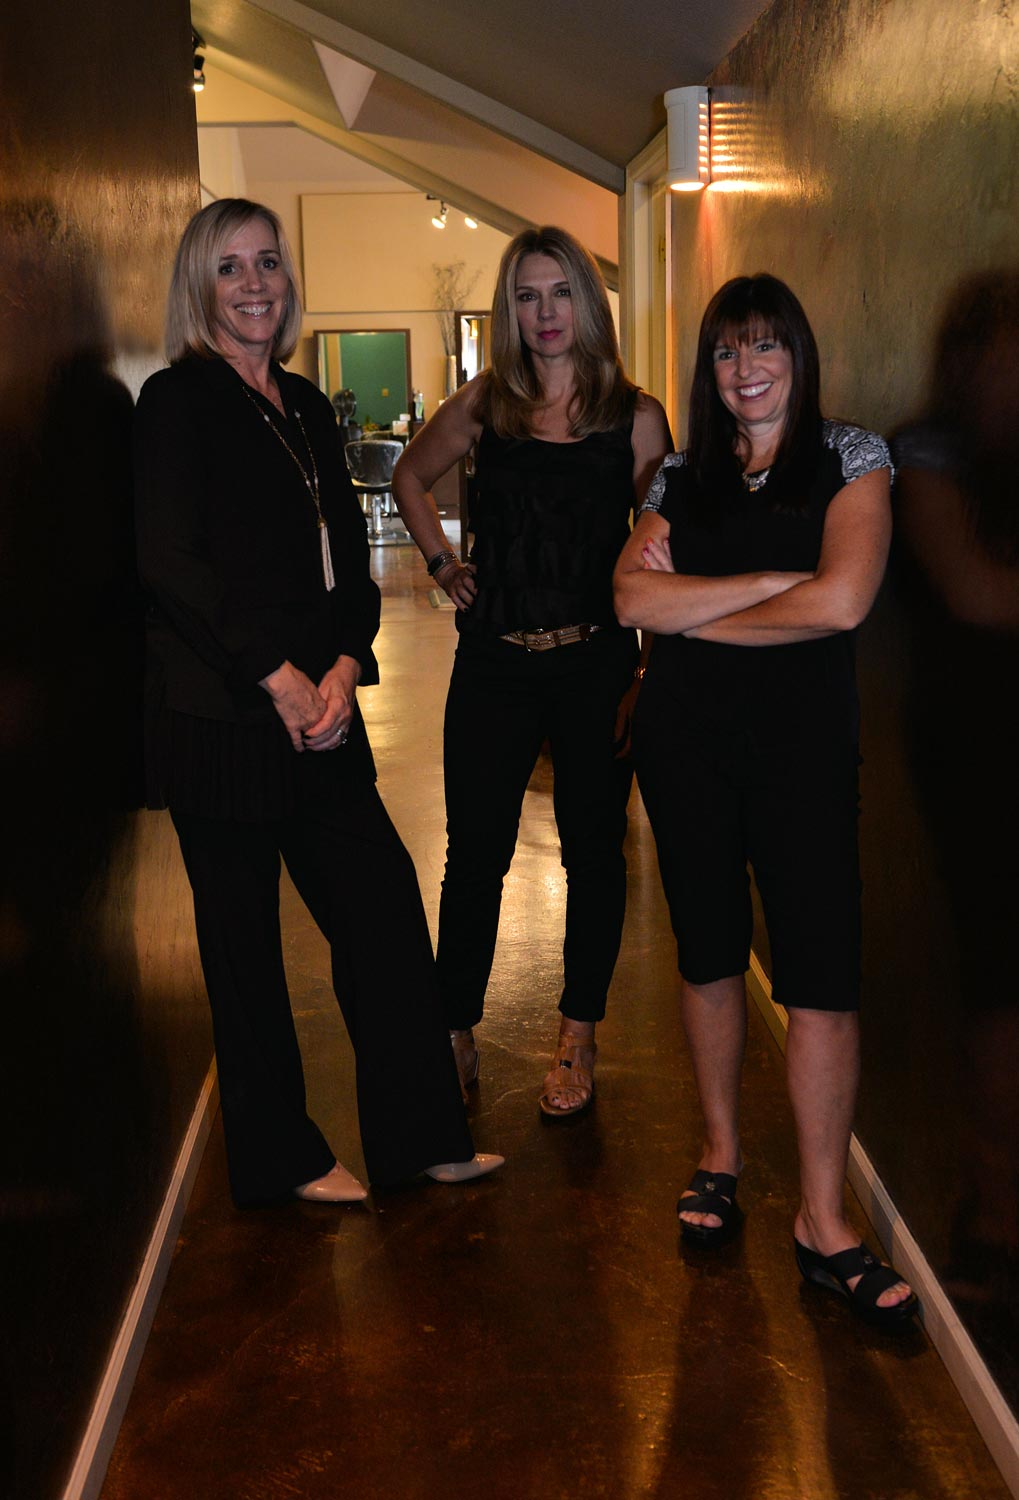 Melissa, Danielle and Kim have been partners in Lotus Salon & Spa for years. They've created a warm and welcoming atmosphere, which encourages a higher level of relaxation and beauty.